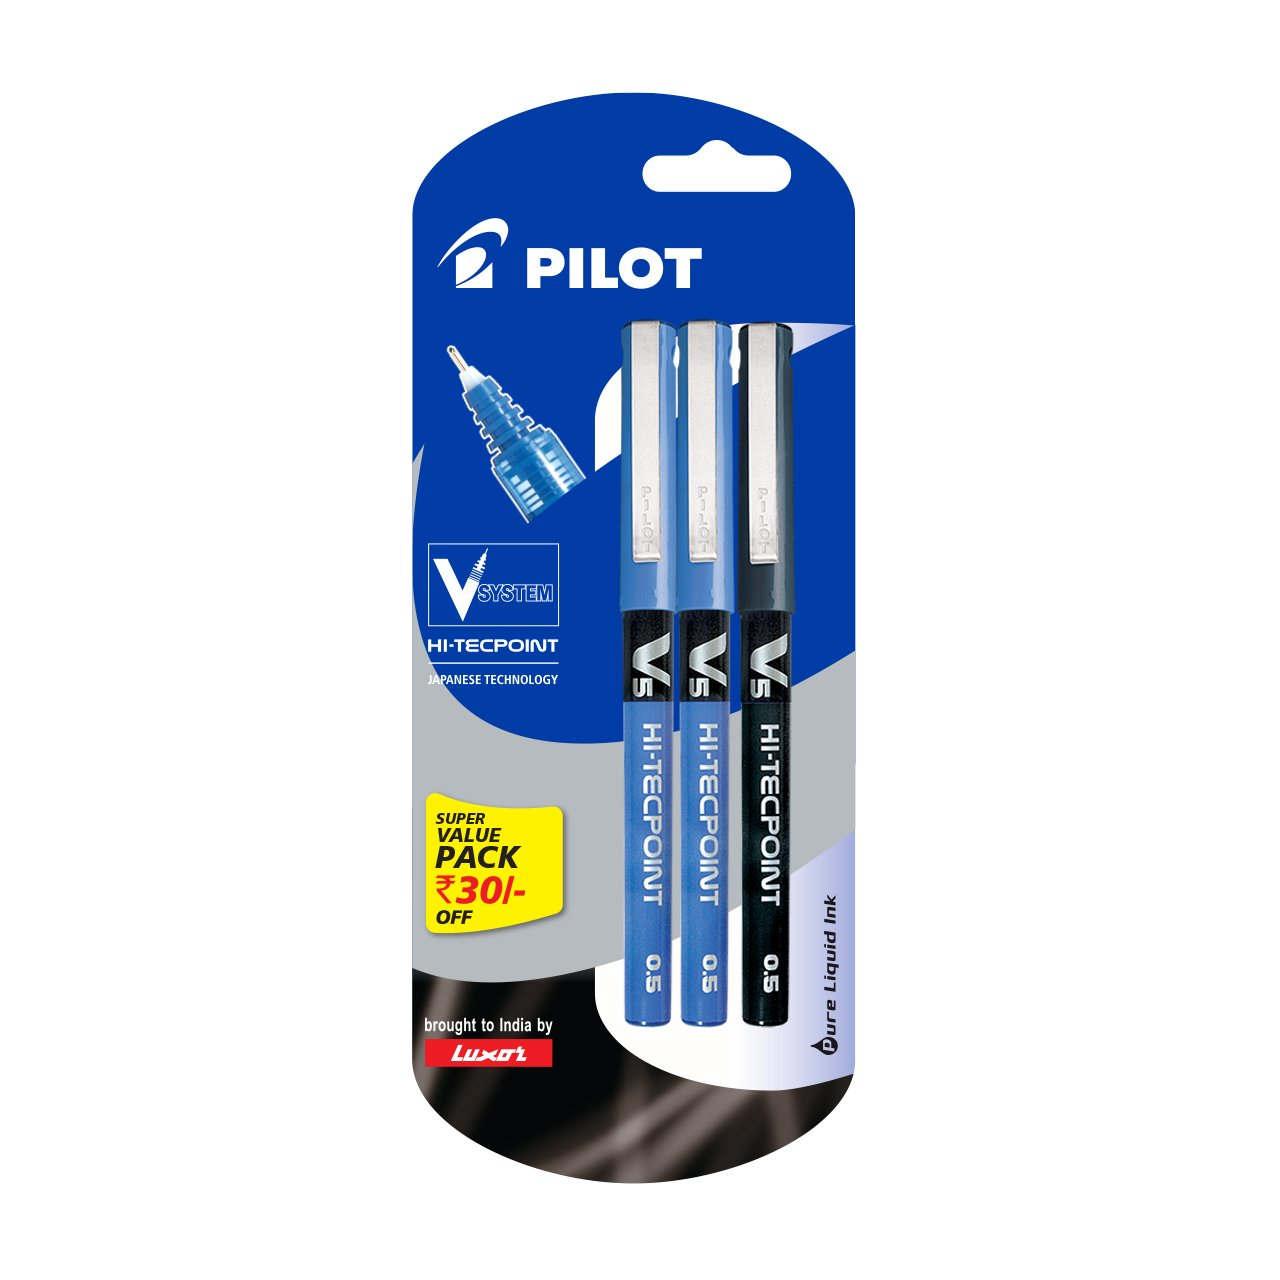 Pilot V5 Liquid Ink Roller Ball Pen - 2 Blue + 1 Black